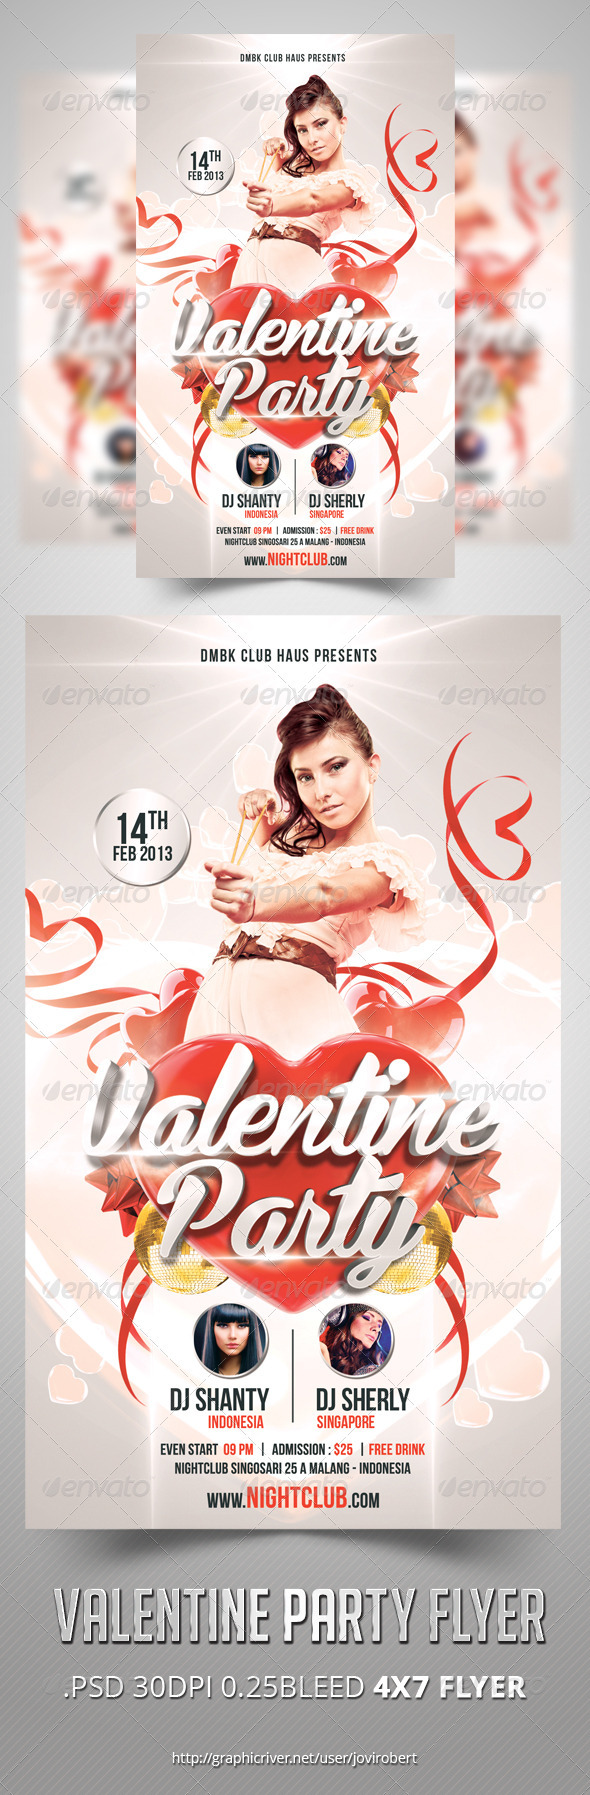 GraphicRiver Valentine Party Flyer 3753093